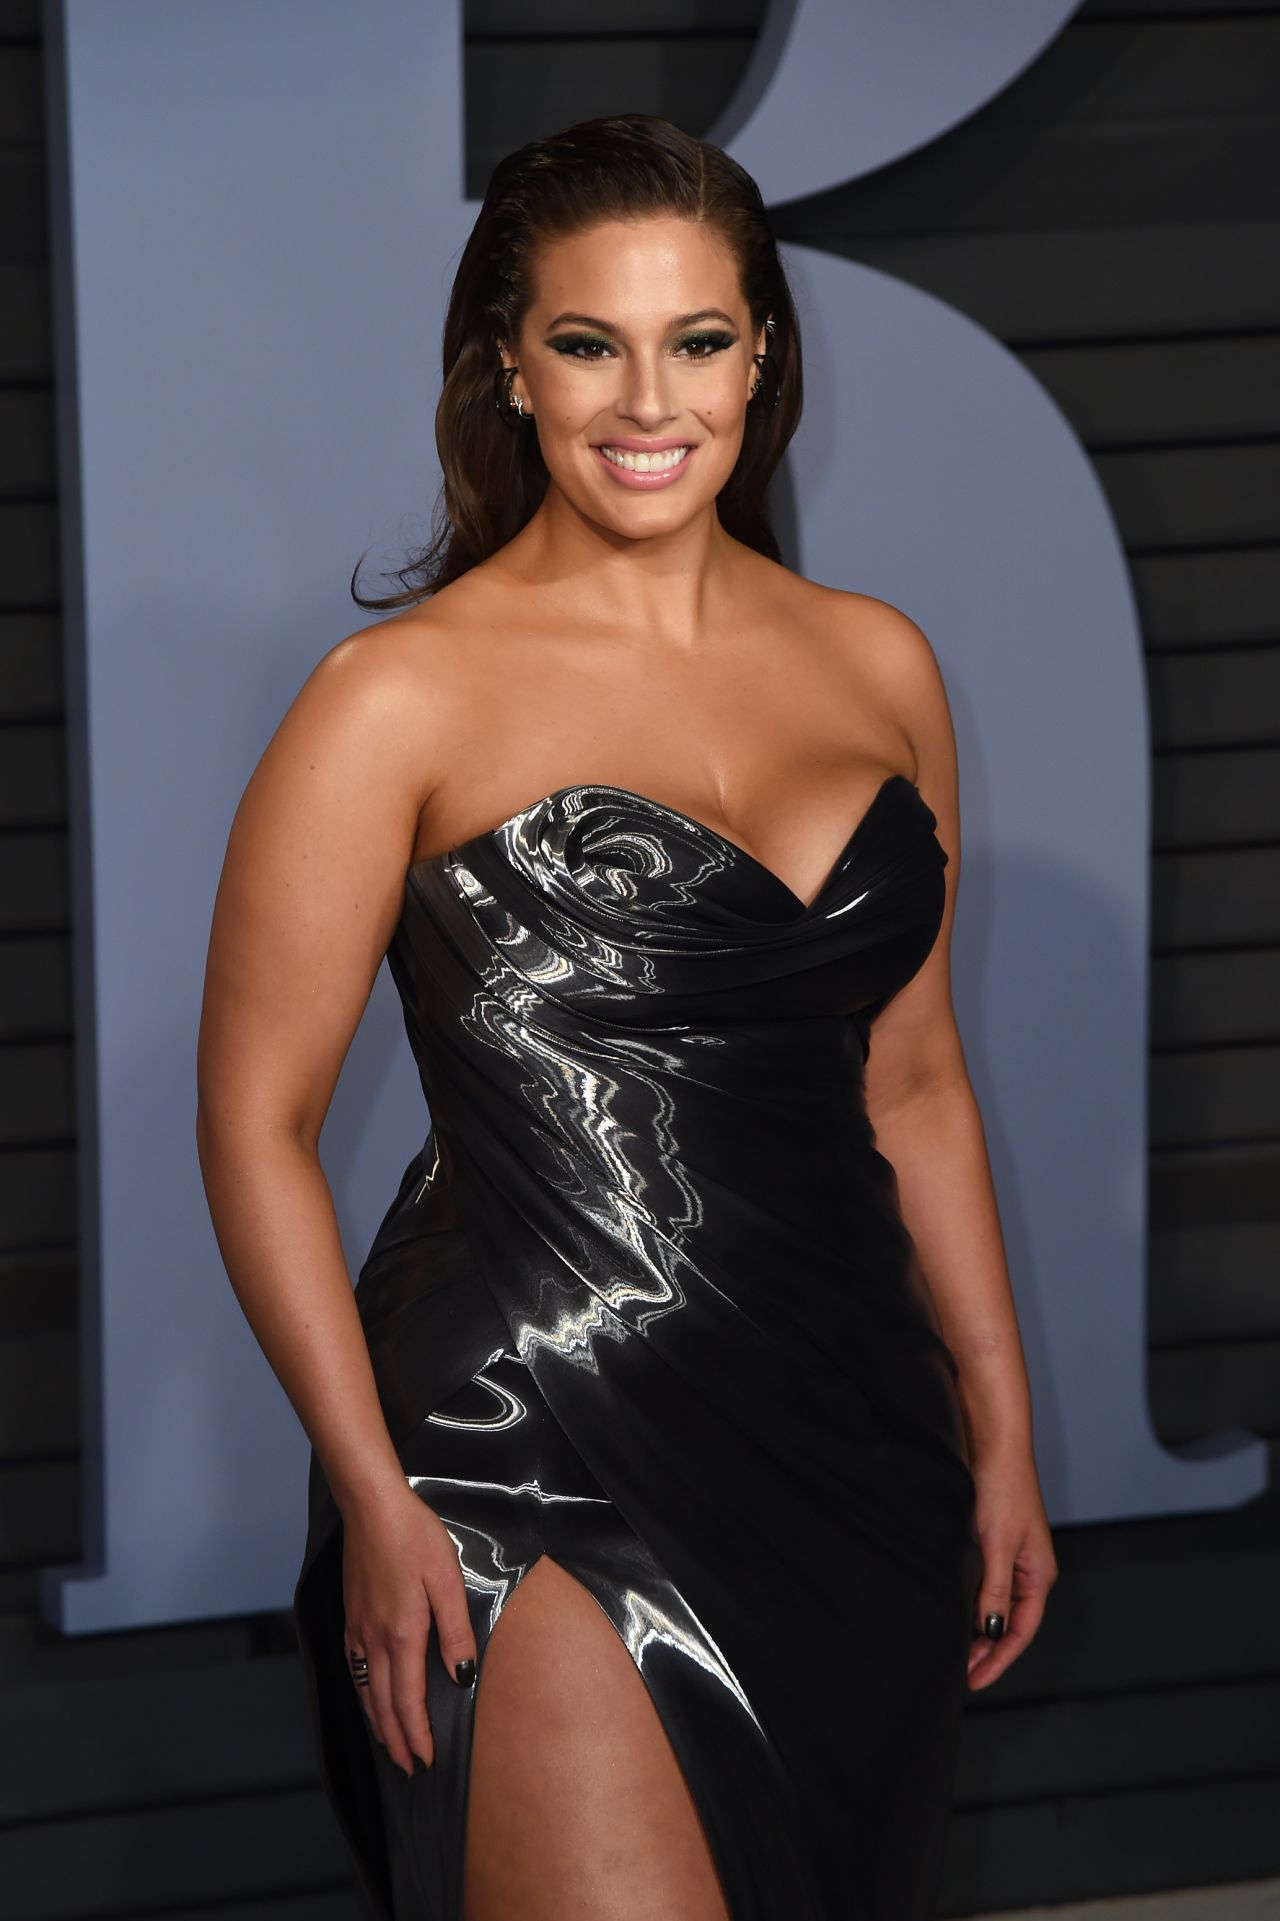 ashley graham - photo #11